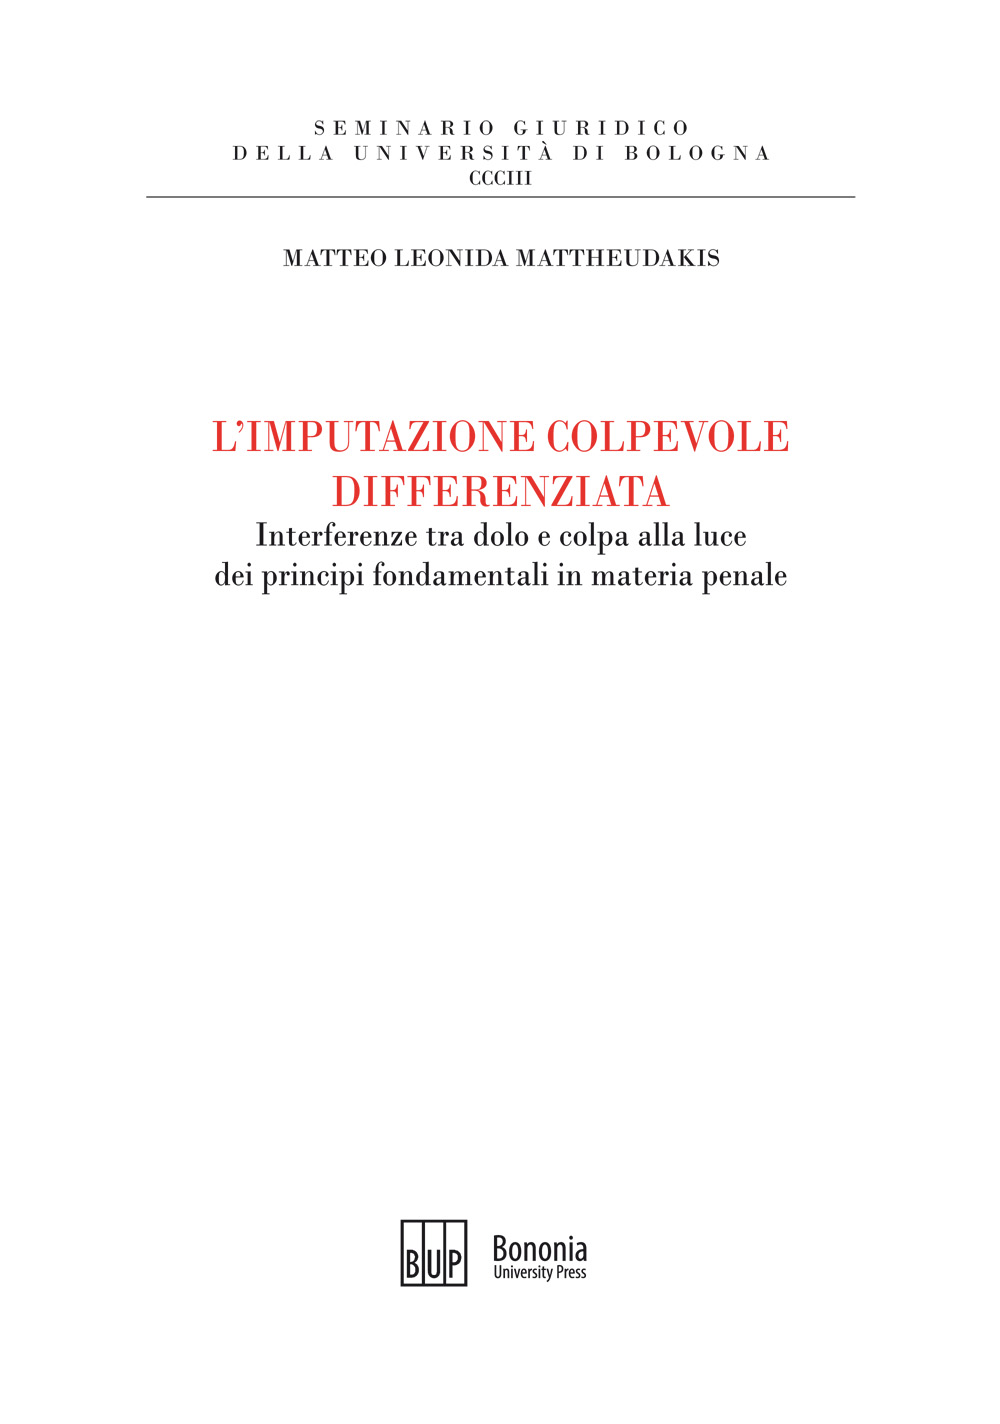 L'imputazione colpevole differenziata - Bononia University Press